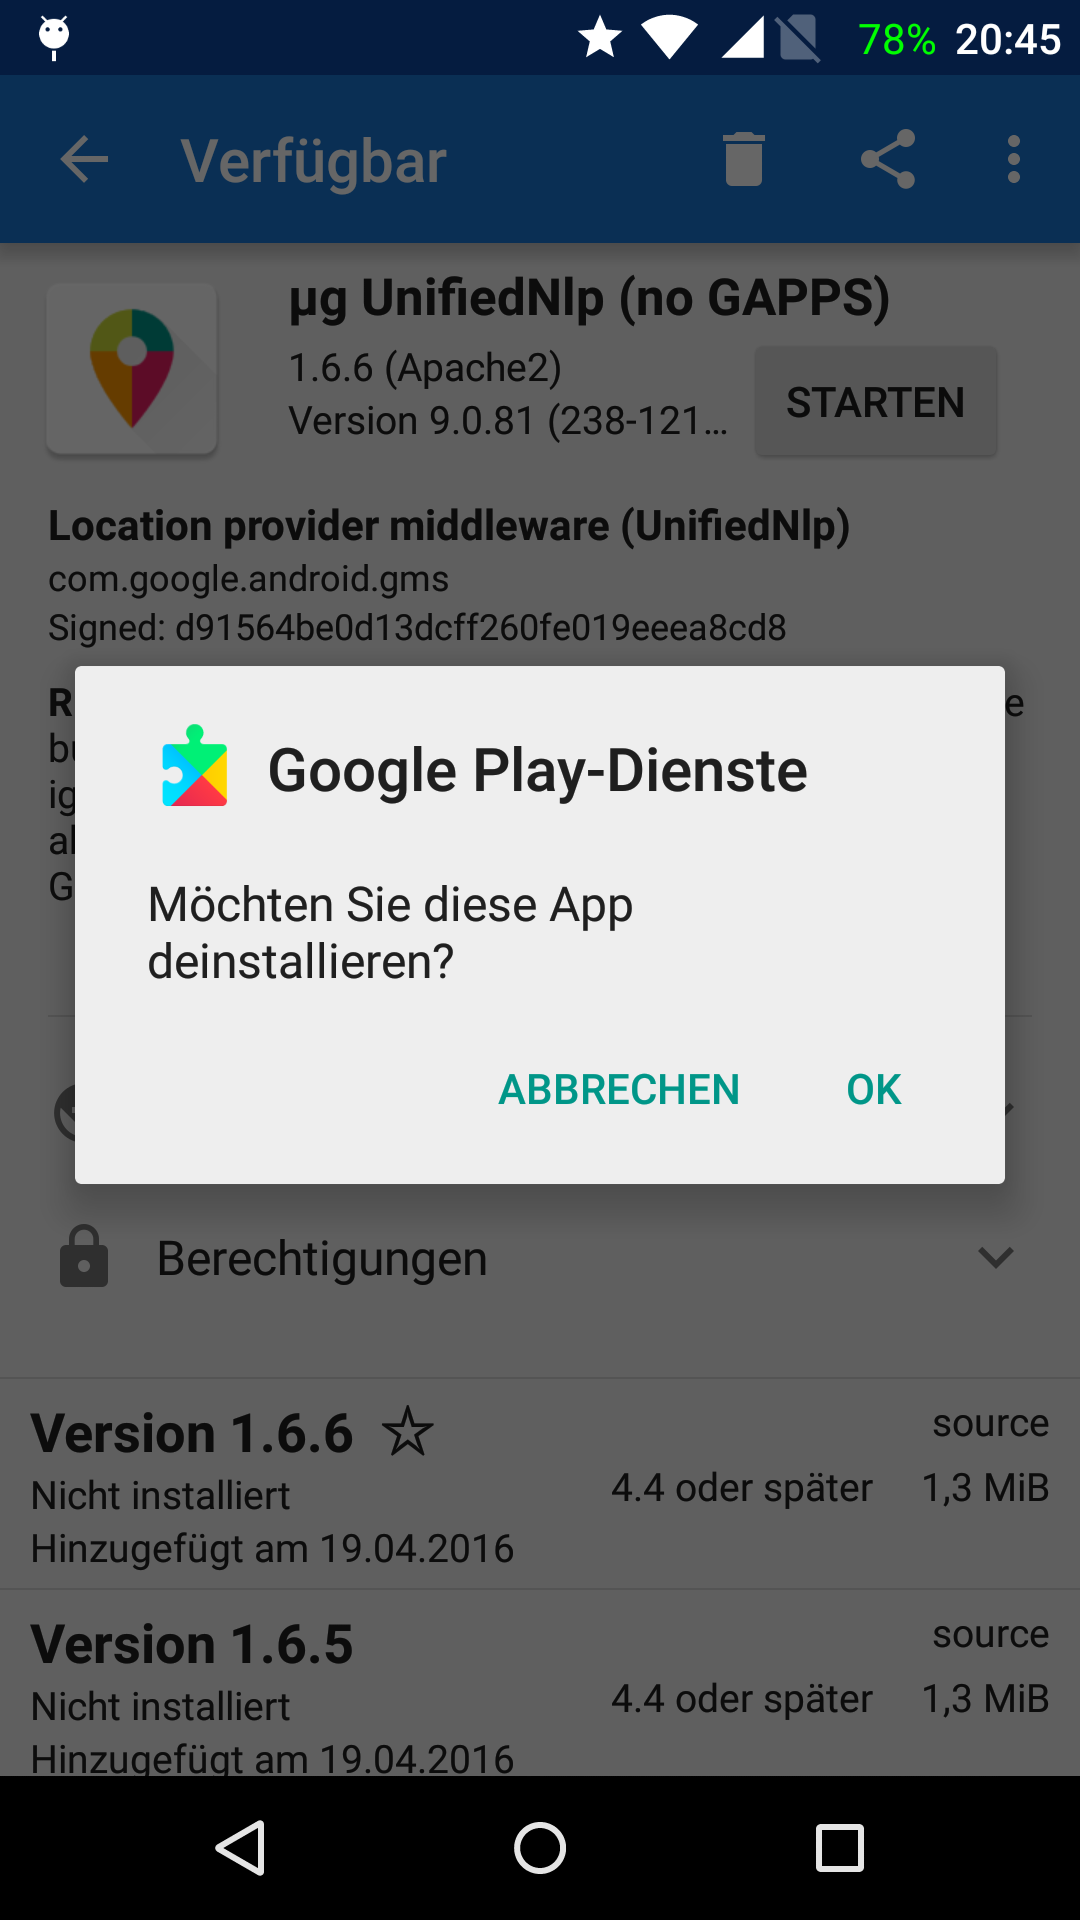 Location Service (GPS) issues with FP Open OS running OpenGAPPS and